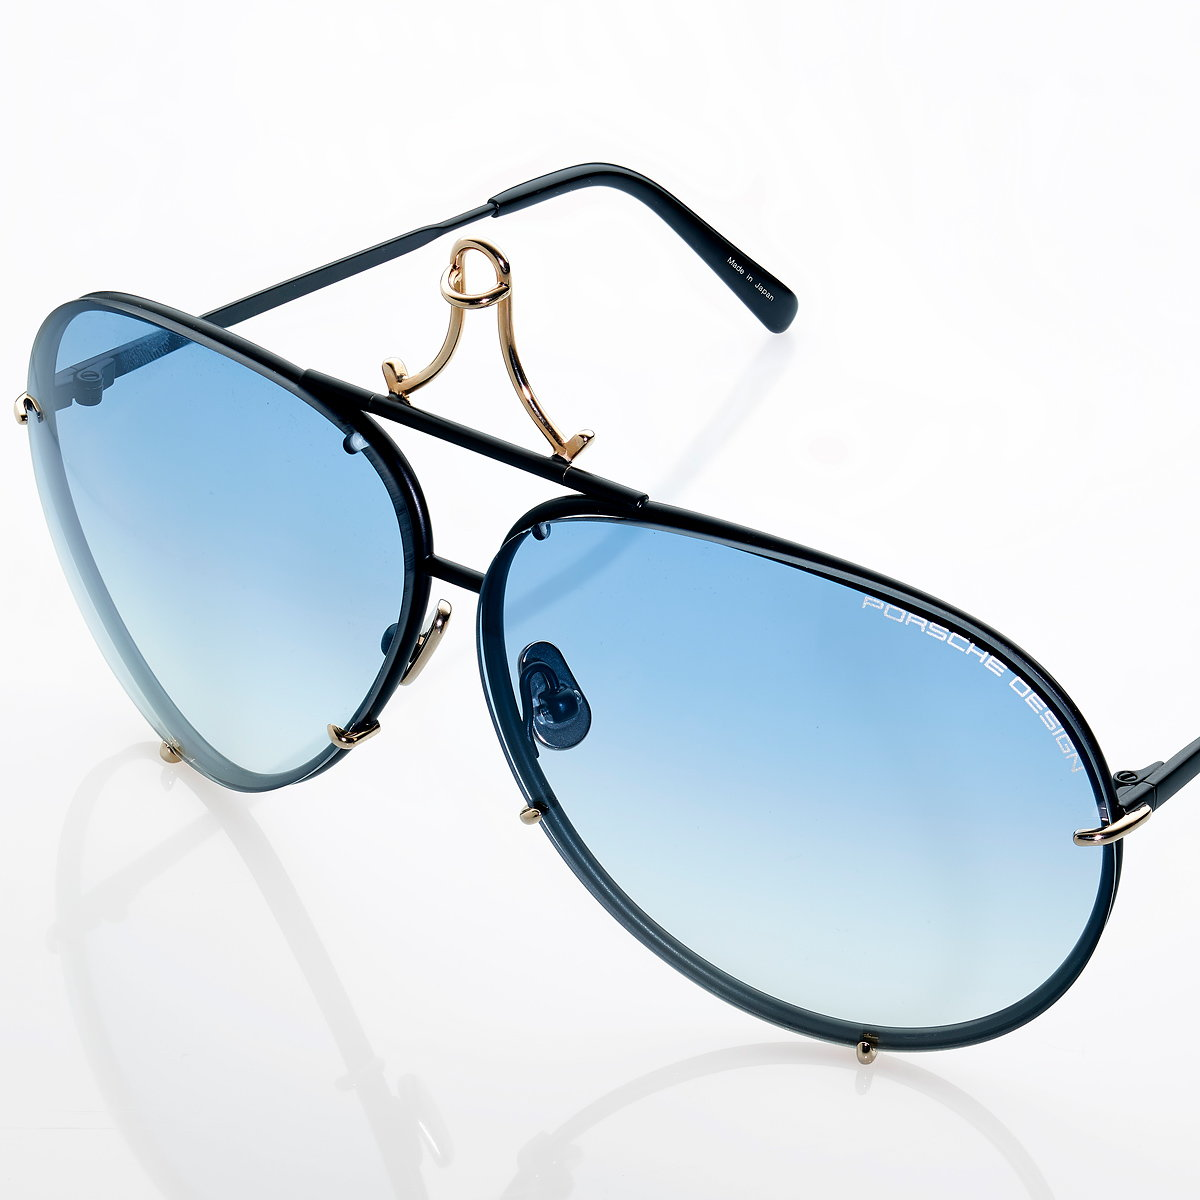 Porsche Design Releases Special 40Y Limited Edition of Iconic P'8478 Sunglasses